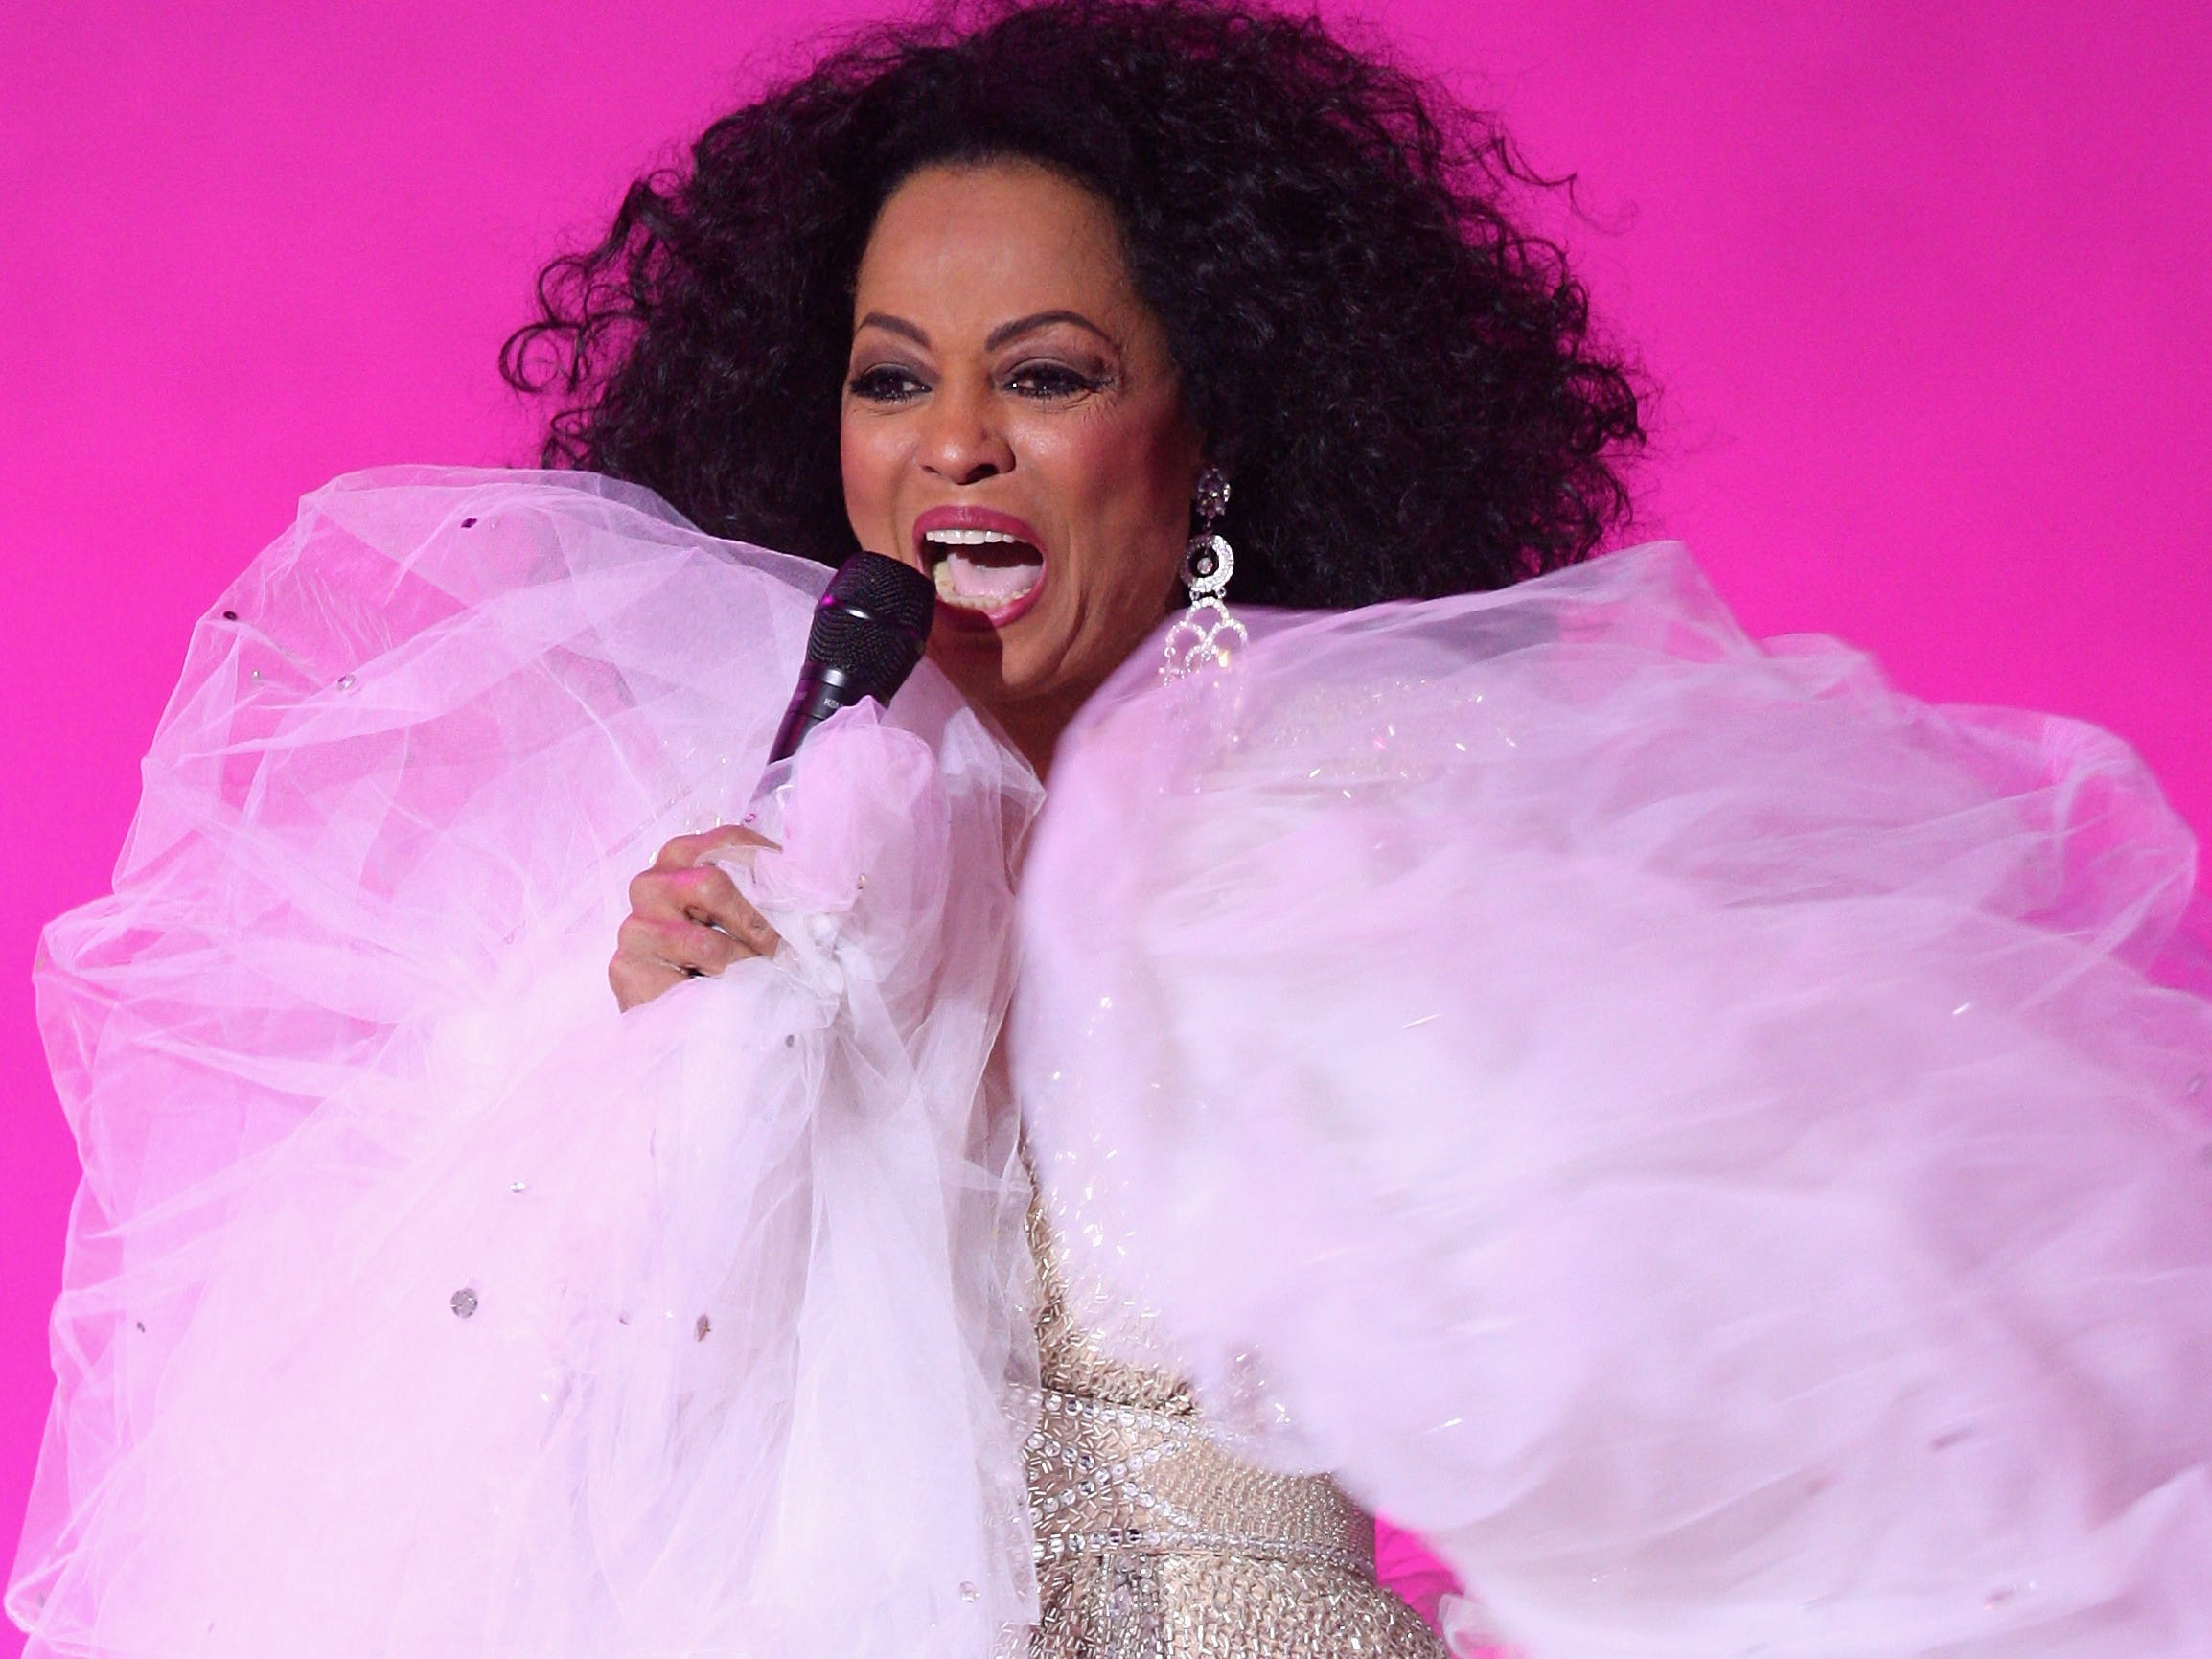 Diana Ross performs at the Nobel Peace Prize Concert 2008 at the Oslo Spektrum in Oslo, Norway on Dec. 11, 2008.